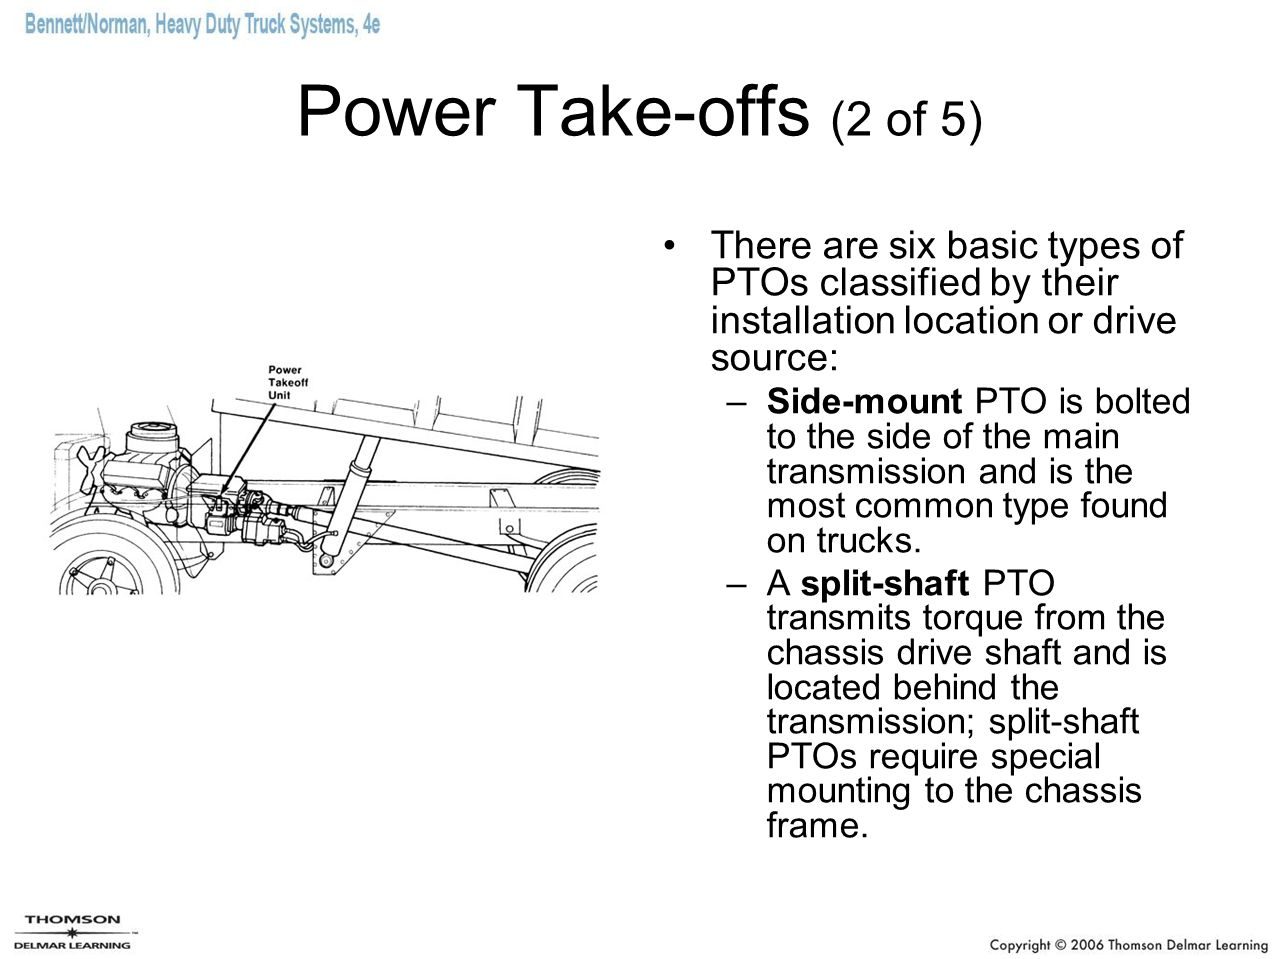 Power Take-offs (2 of 5) There are six basic types of PTOs classified by their installation location or drive source: –Side-mount PTO is bolted to the